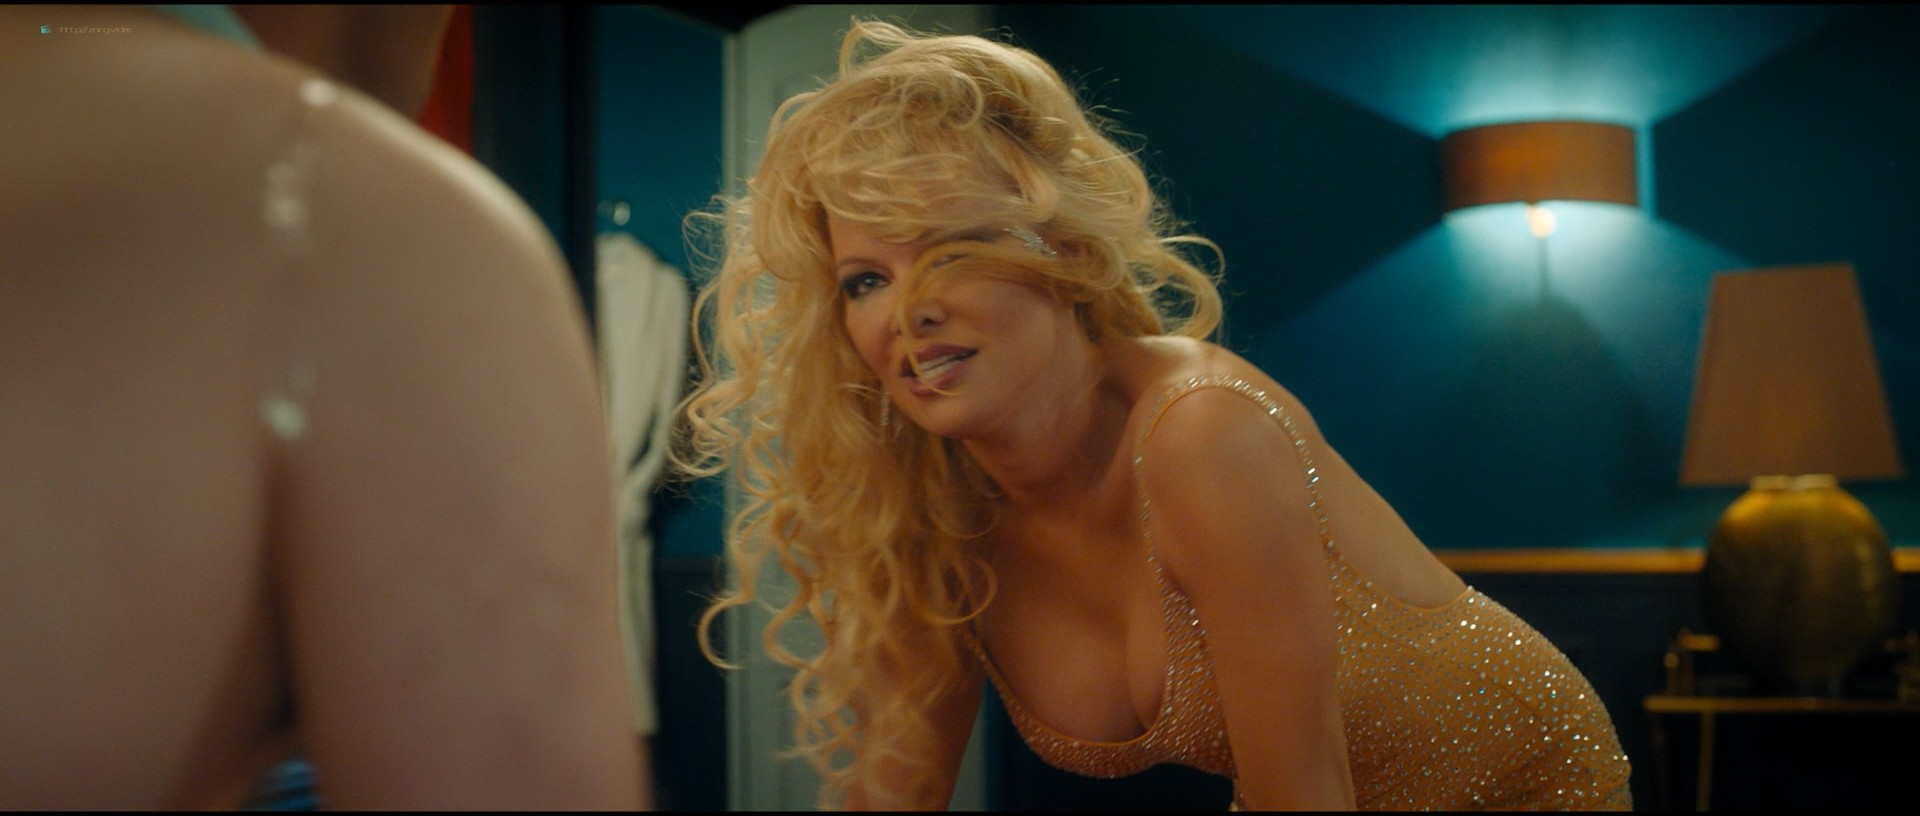 Pamela Anderson sexy Élodie Fontan and others hot - Nicky Larson et le parfum de Cupidon (2018) 1080p BluRay (3)